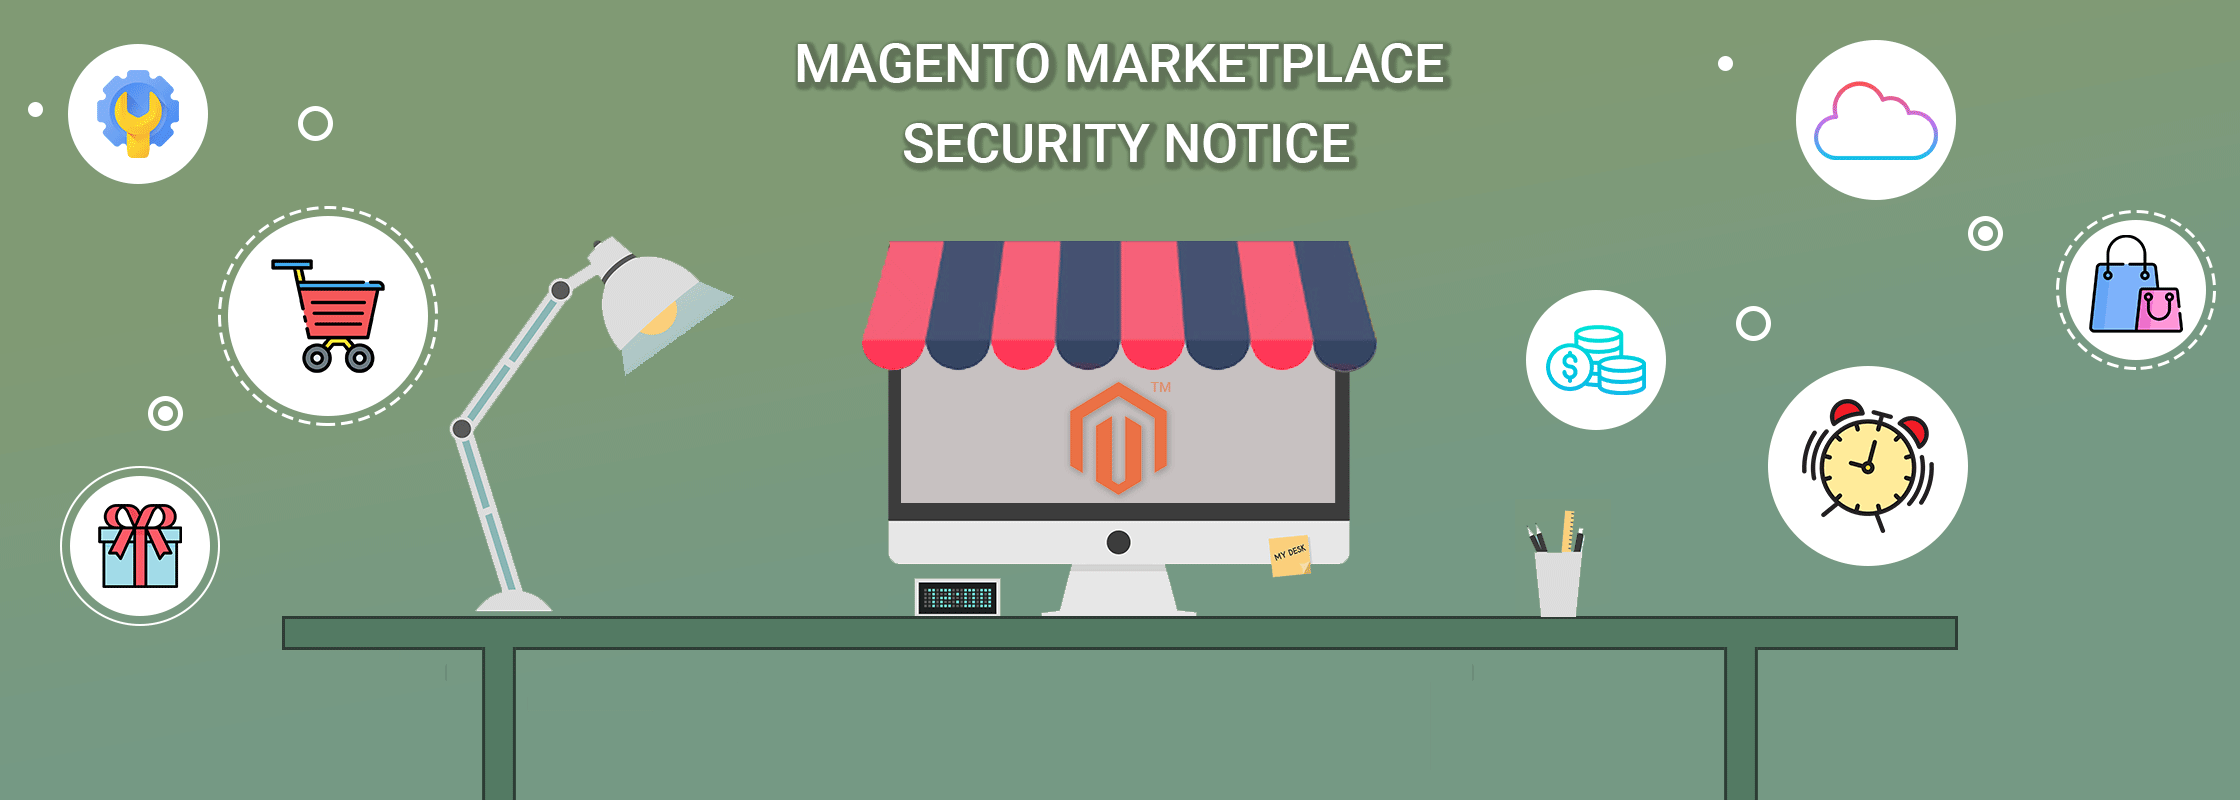 Important Magento Marketplace Security Notice